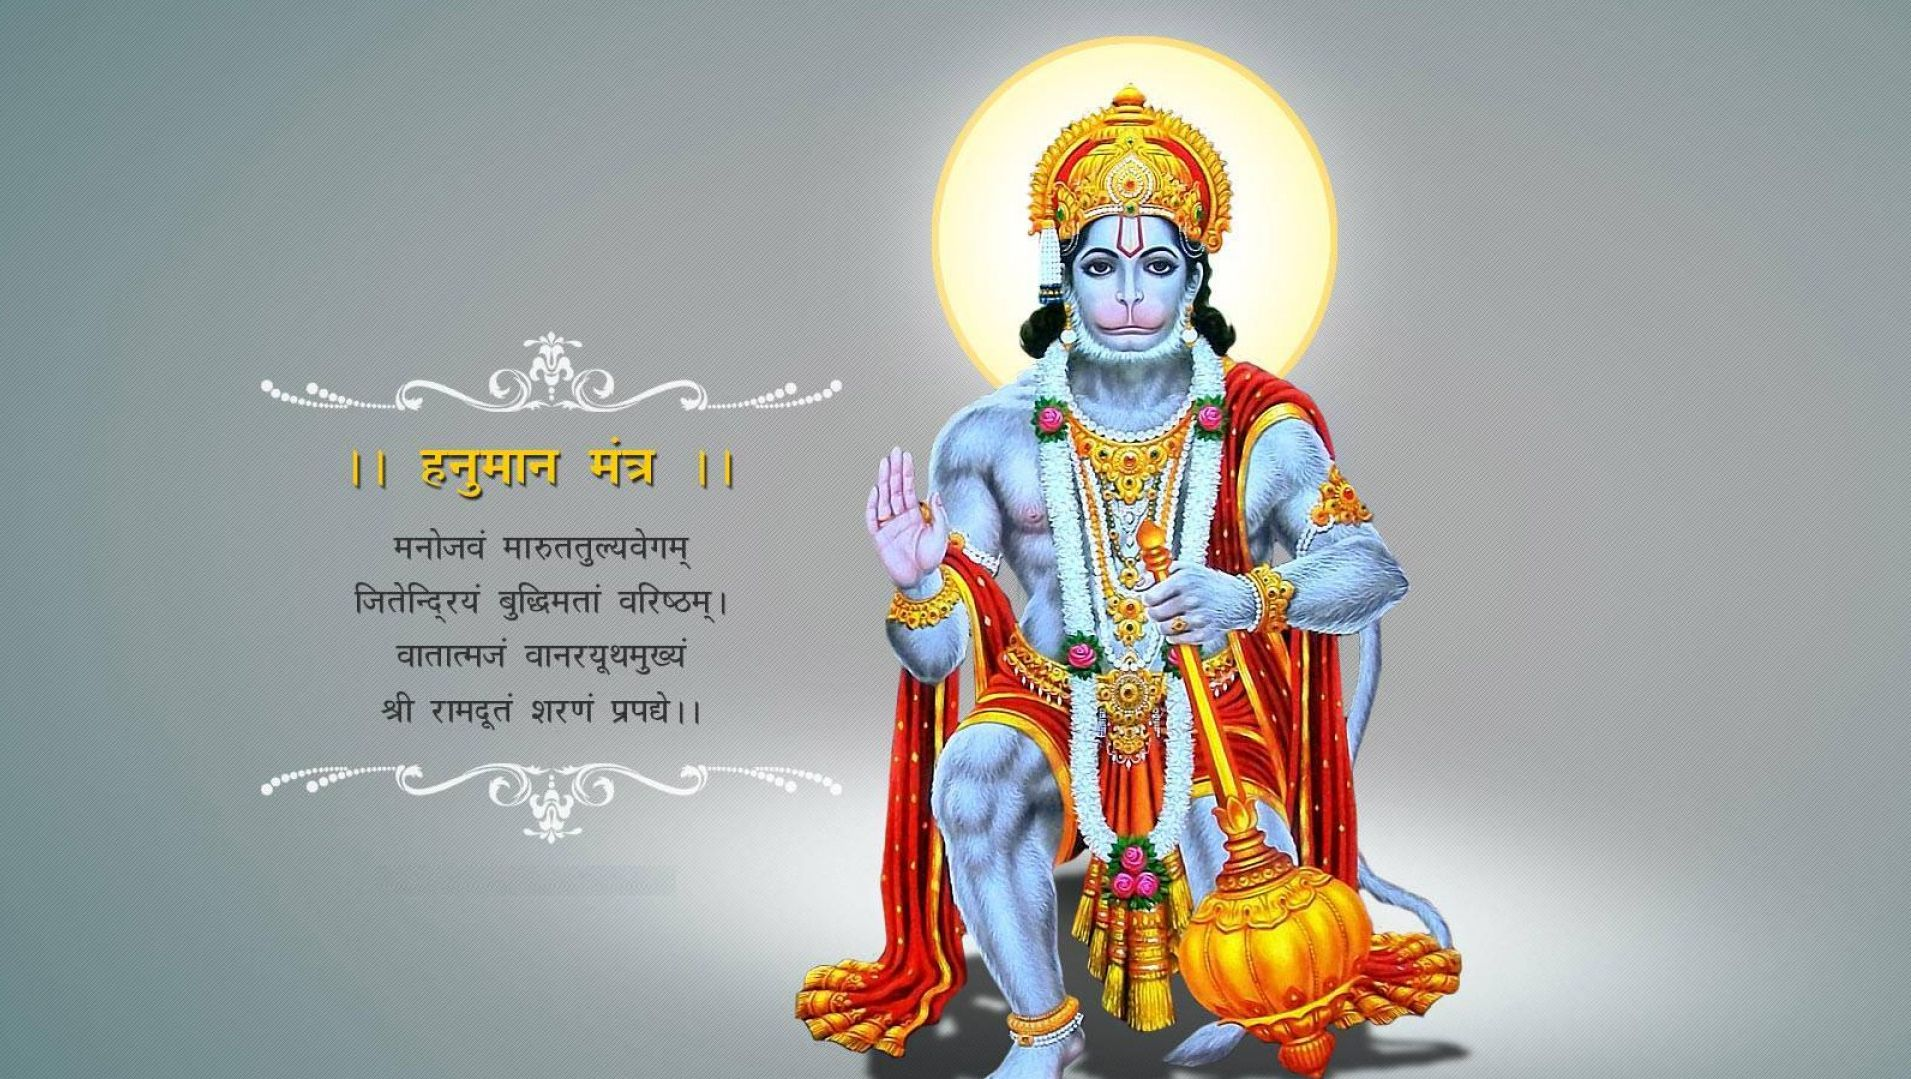 Great Wallpaper Lord Hanuman - Huge-Hanuman-Wallpapers-with-Mantra  Collection_244626.jpg